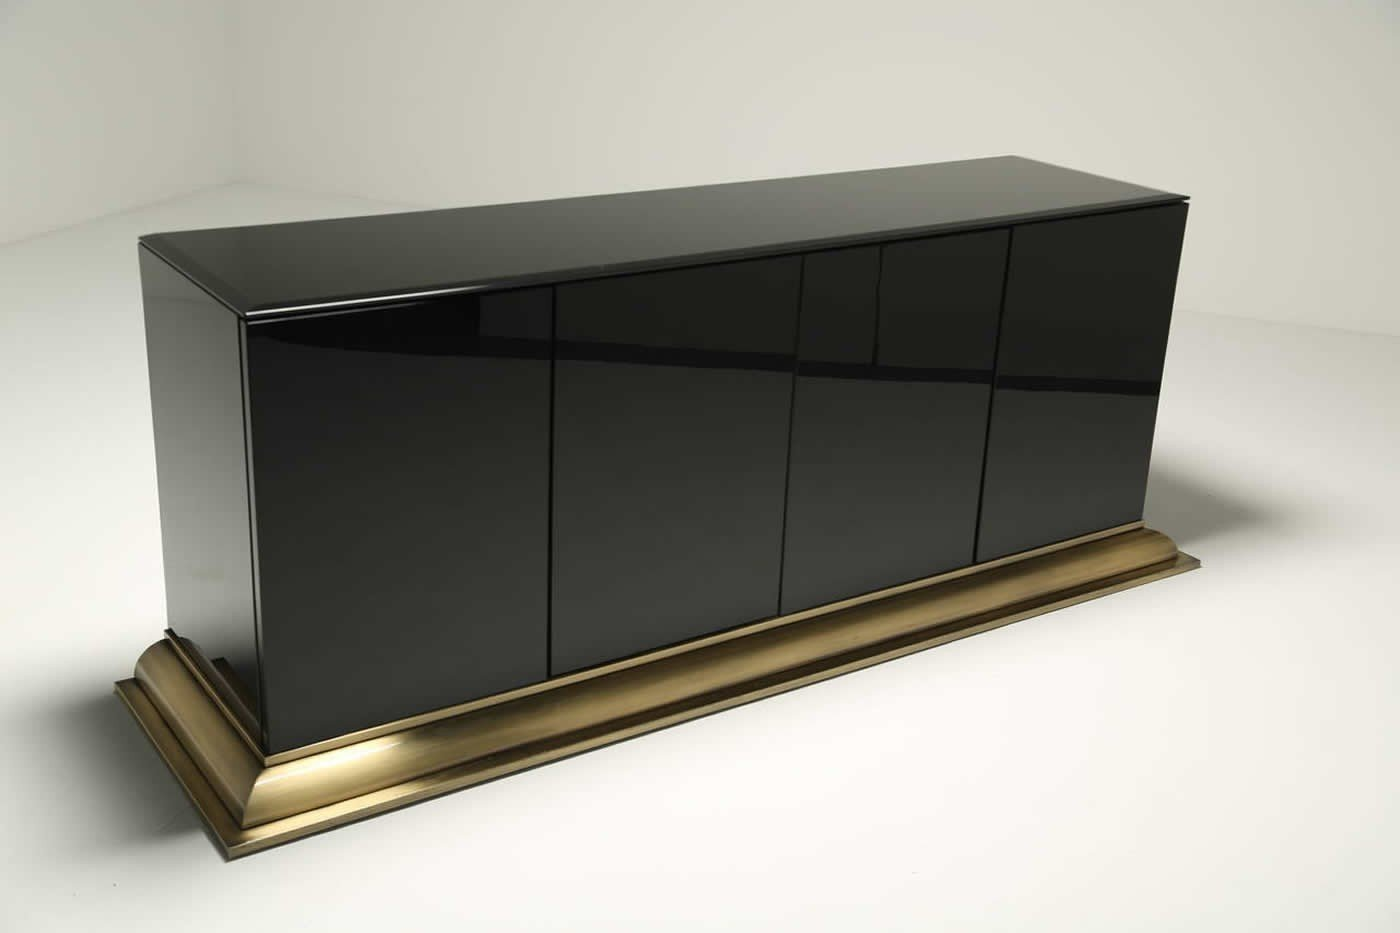 Black Glass And Brass Sideboard By Ello Furniture For Sale